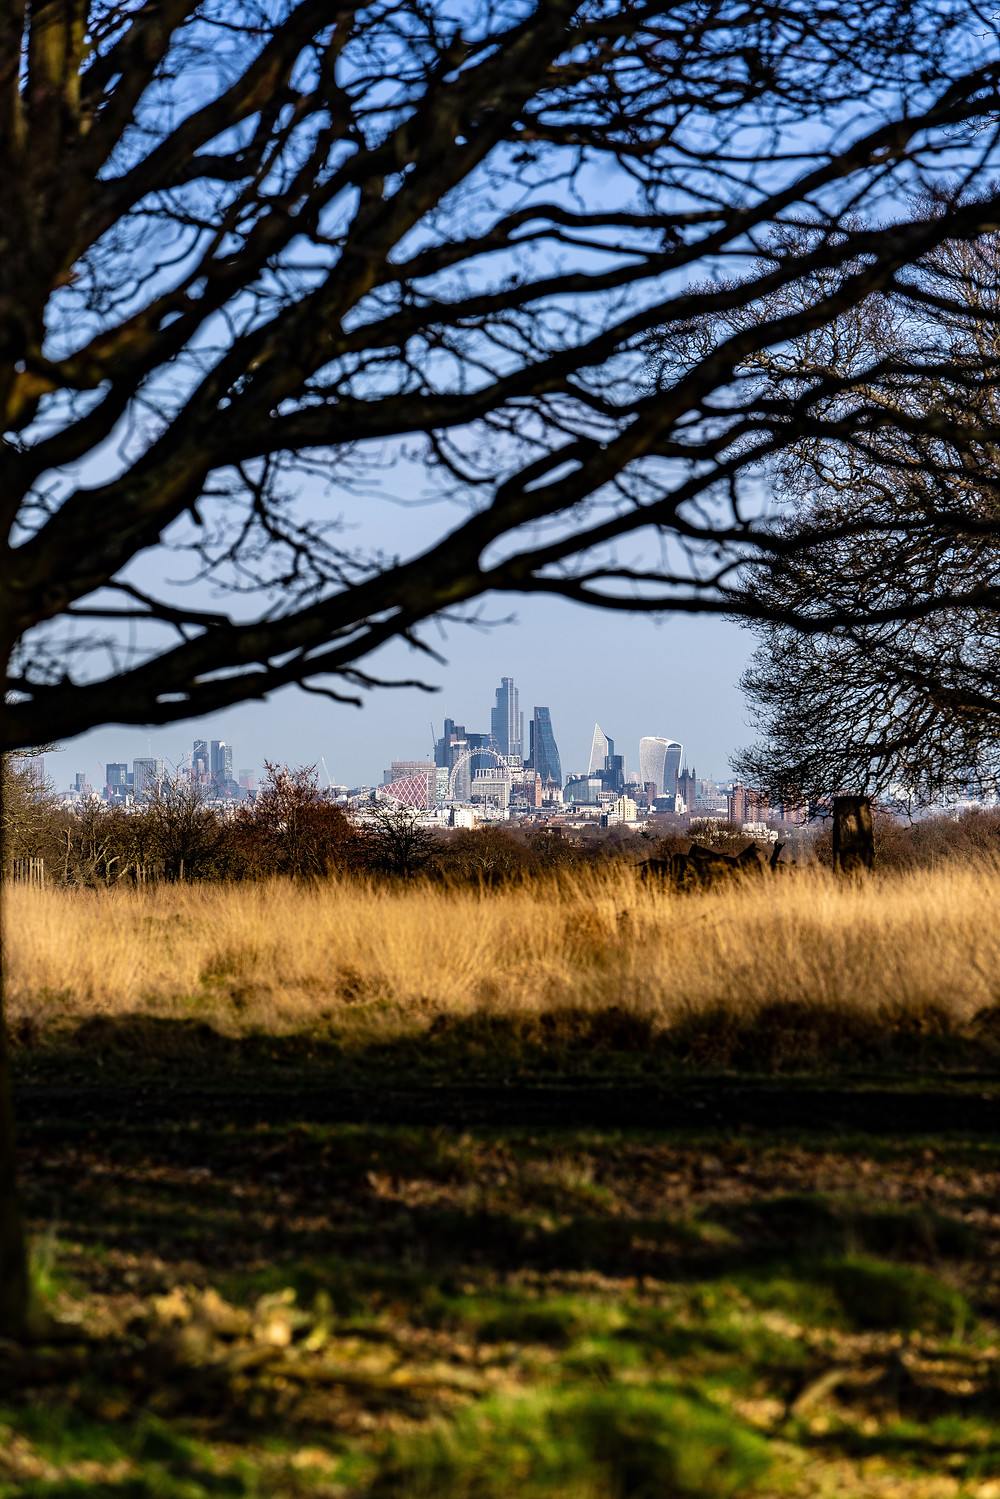 London from Richmond Park - Full Image